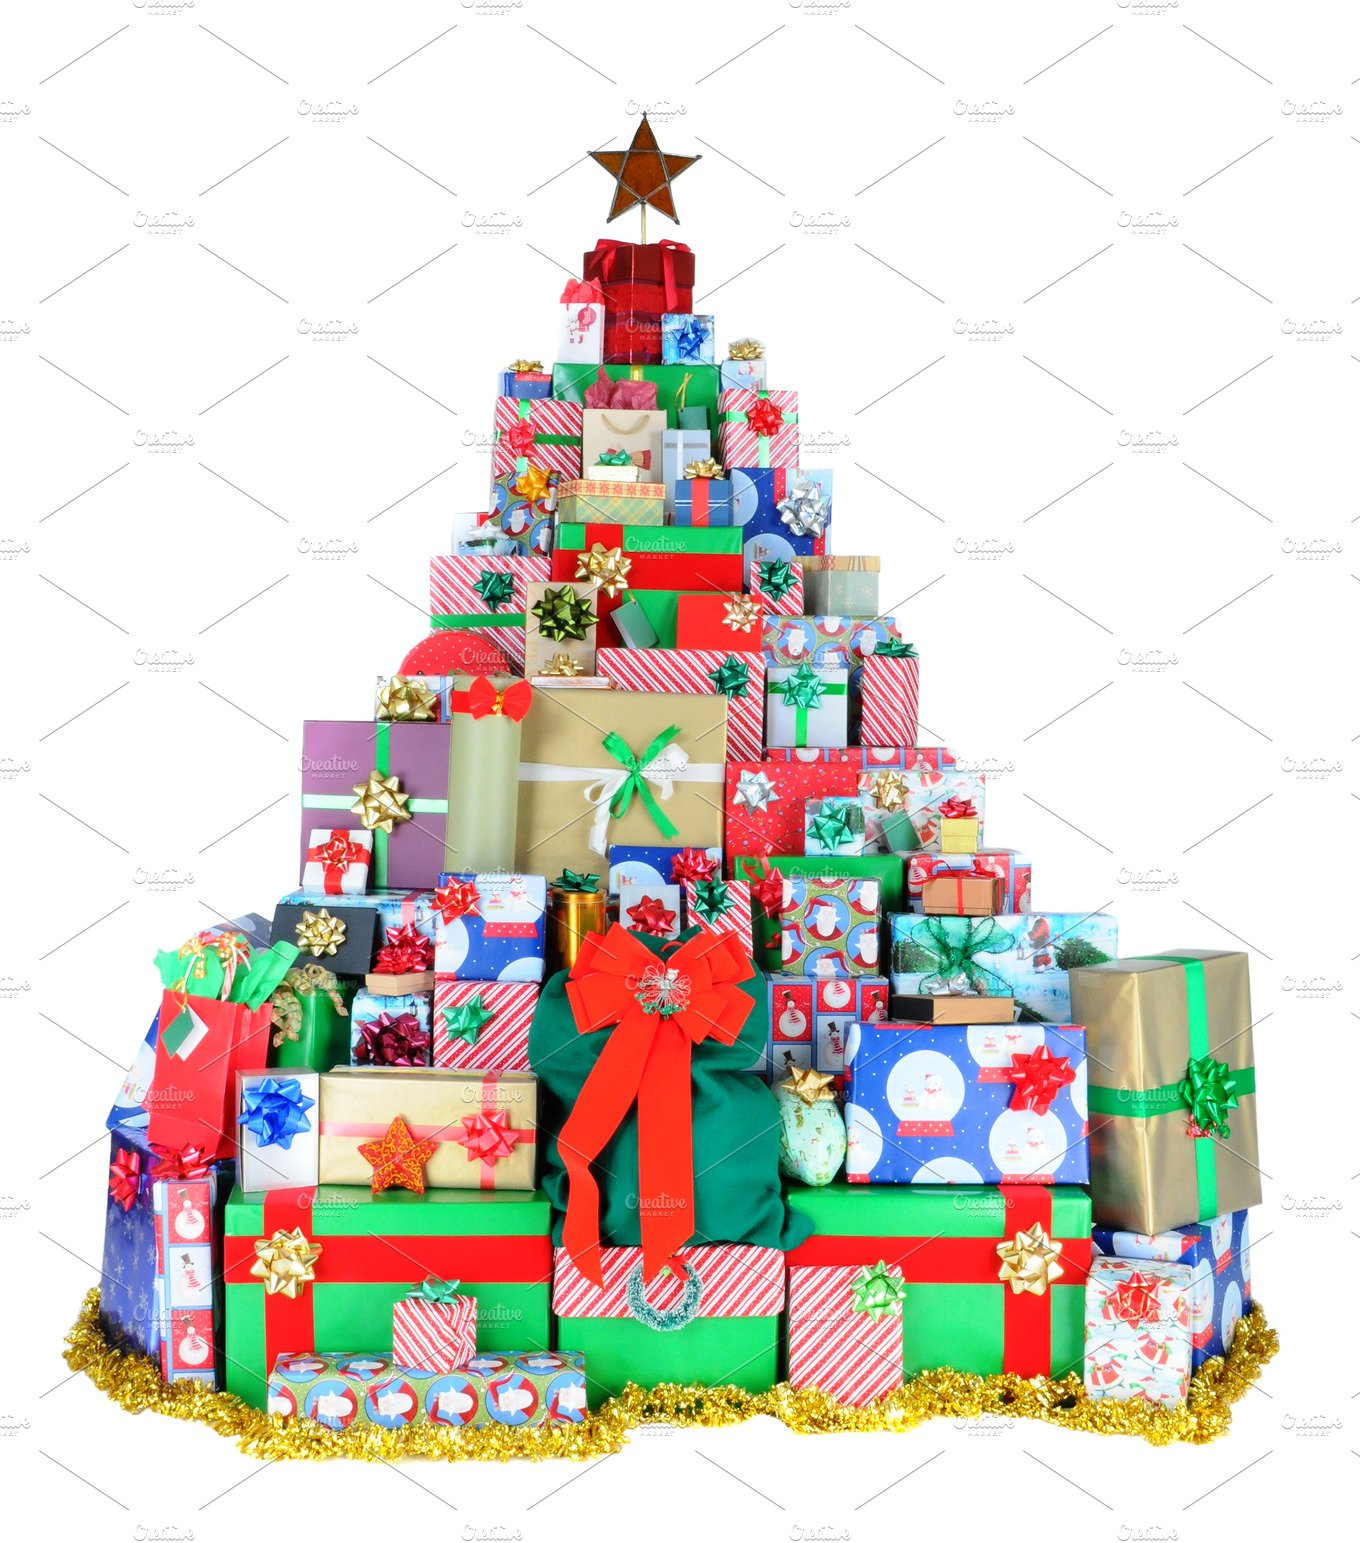 Picture Of Christmas Tree With Presents: Christmas Tree Of Presents